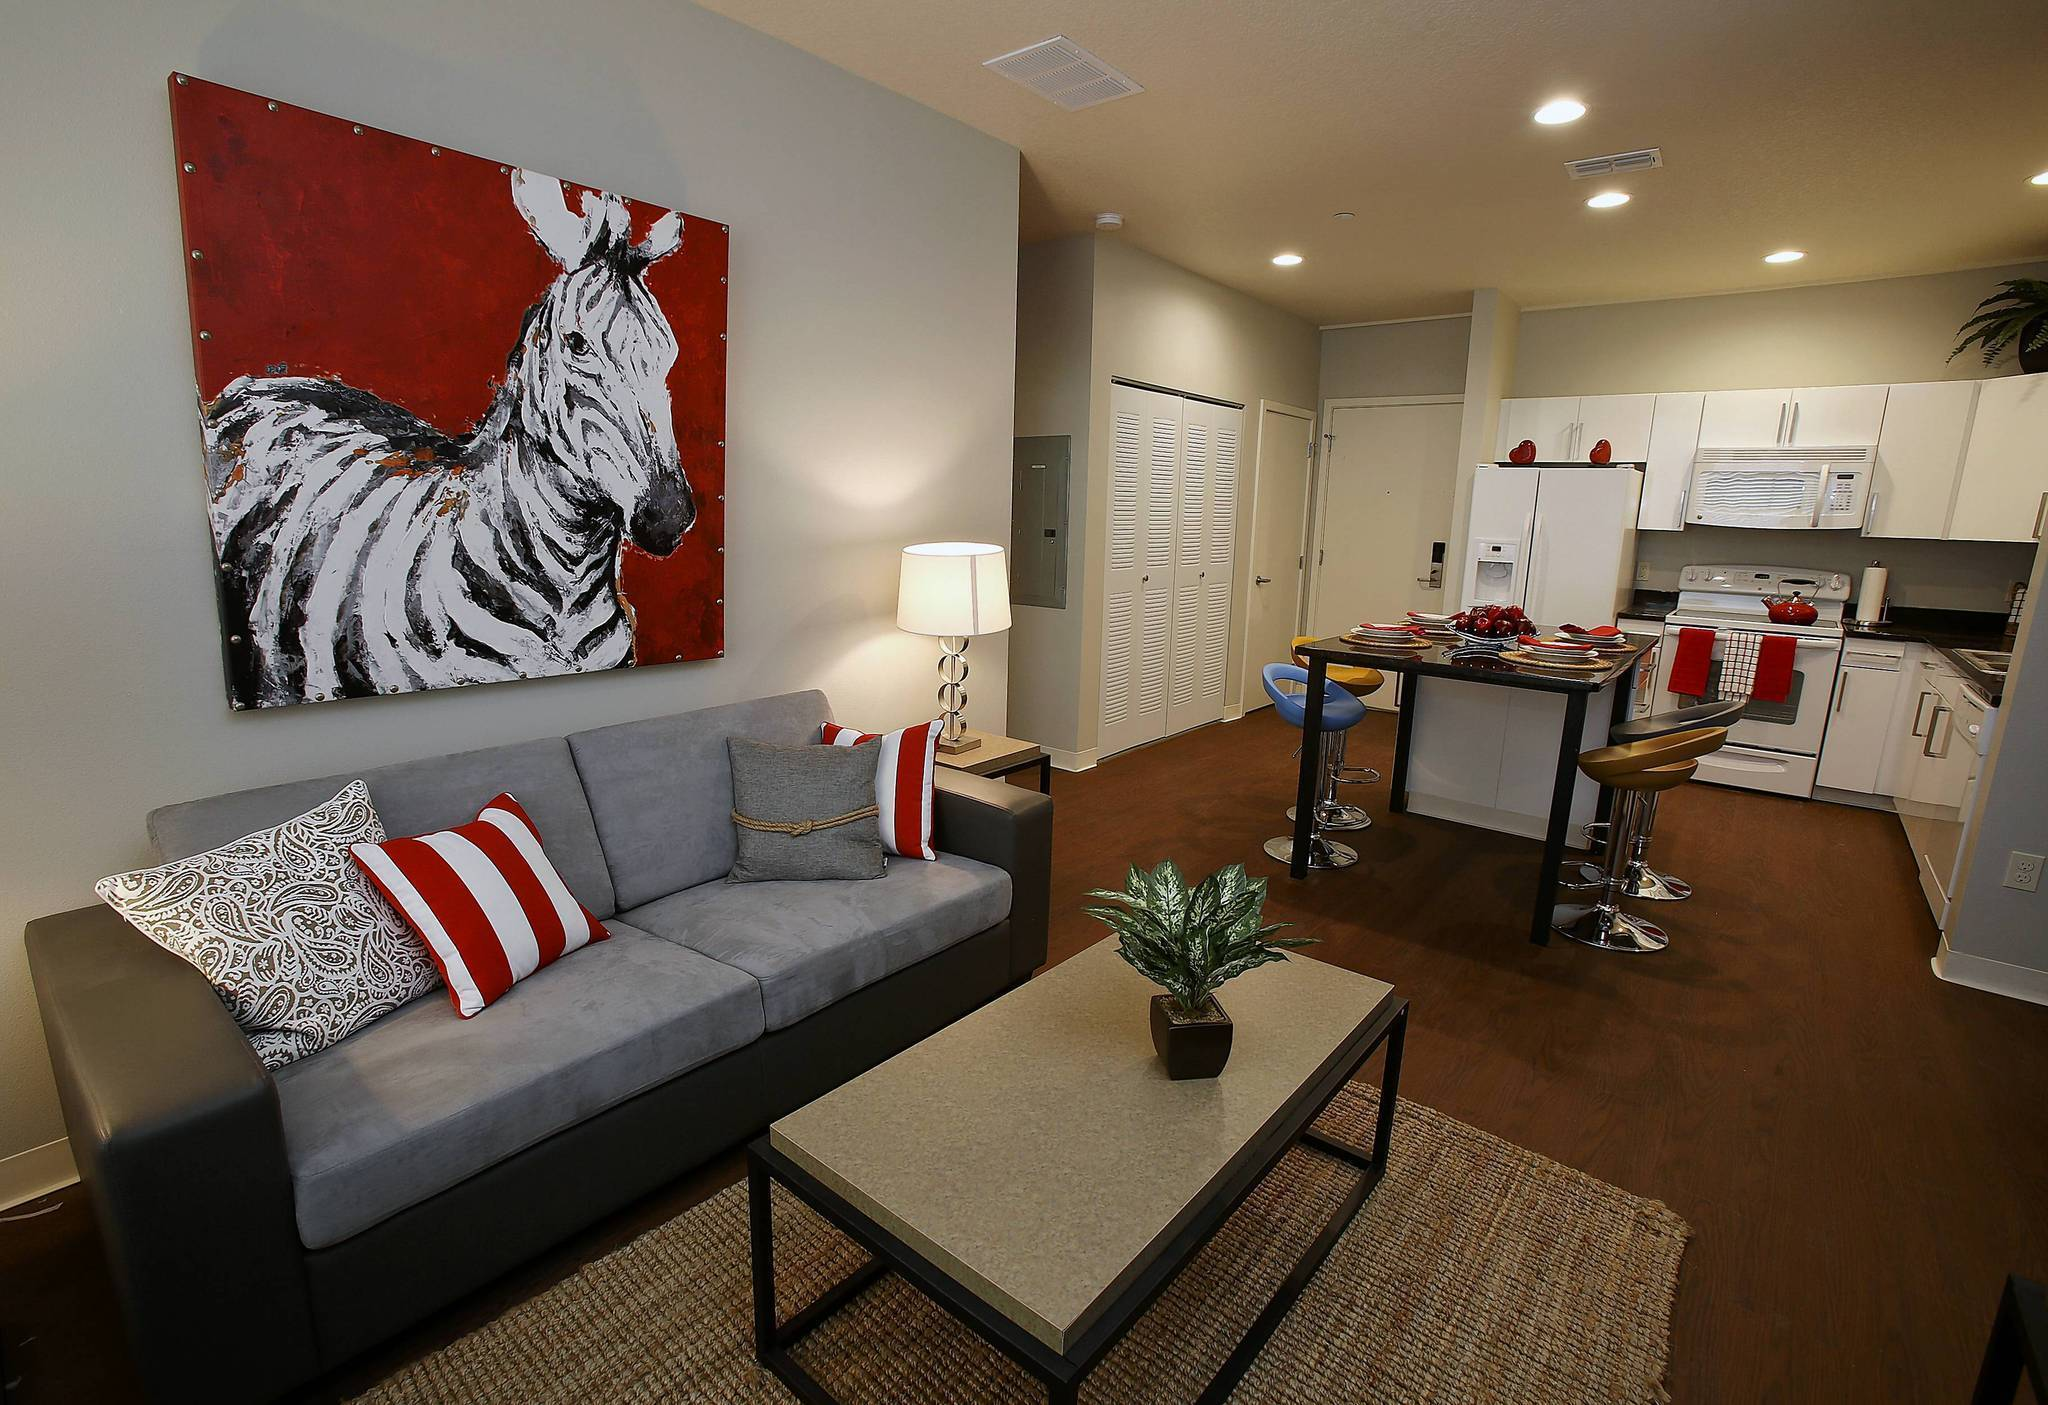 Florida University Student Housing Costs Higher Than